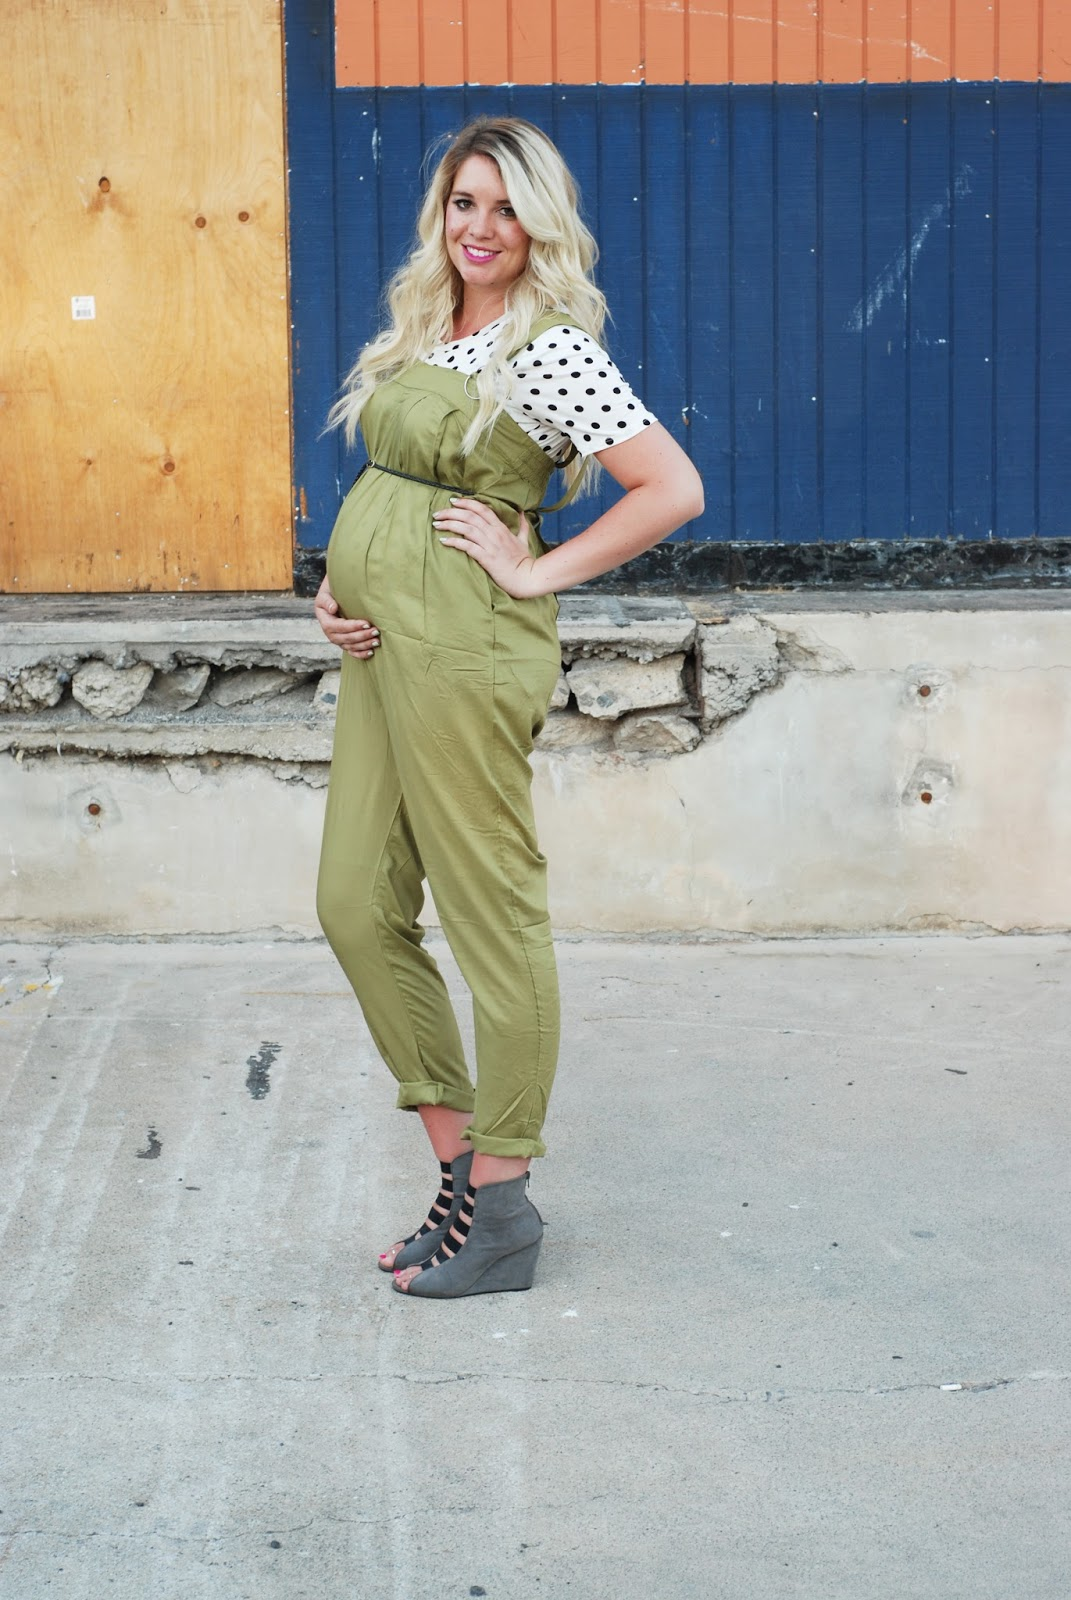 ASOS Maternity, Long Blonde Hair, Utah Fashion Blogger